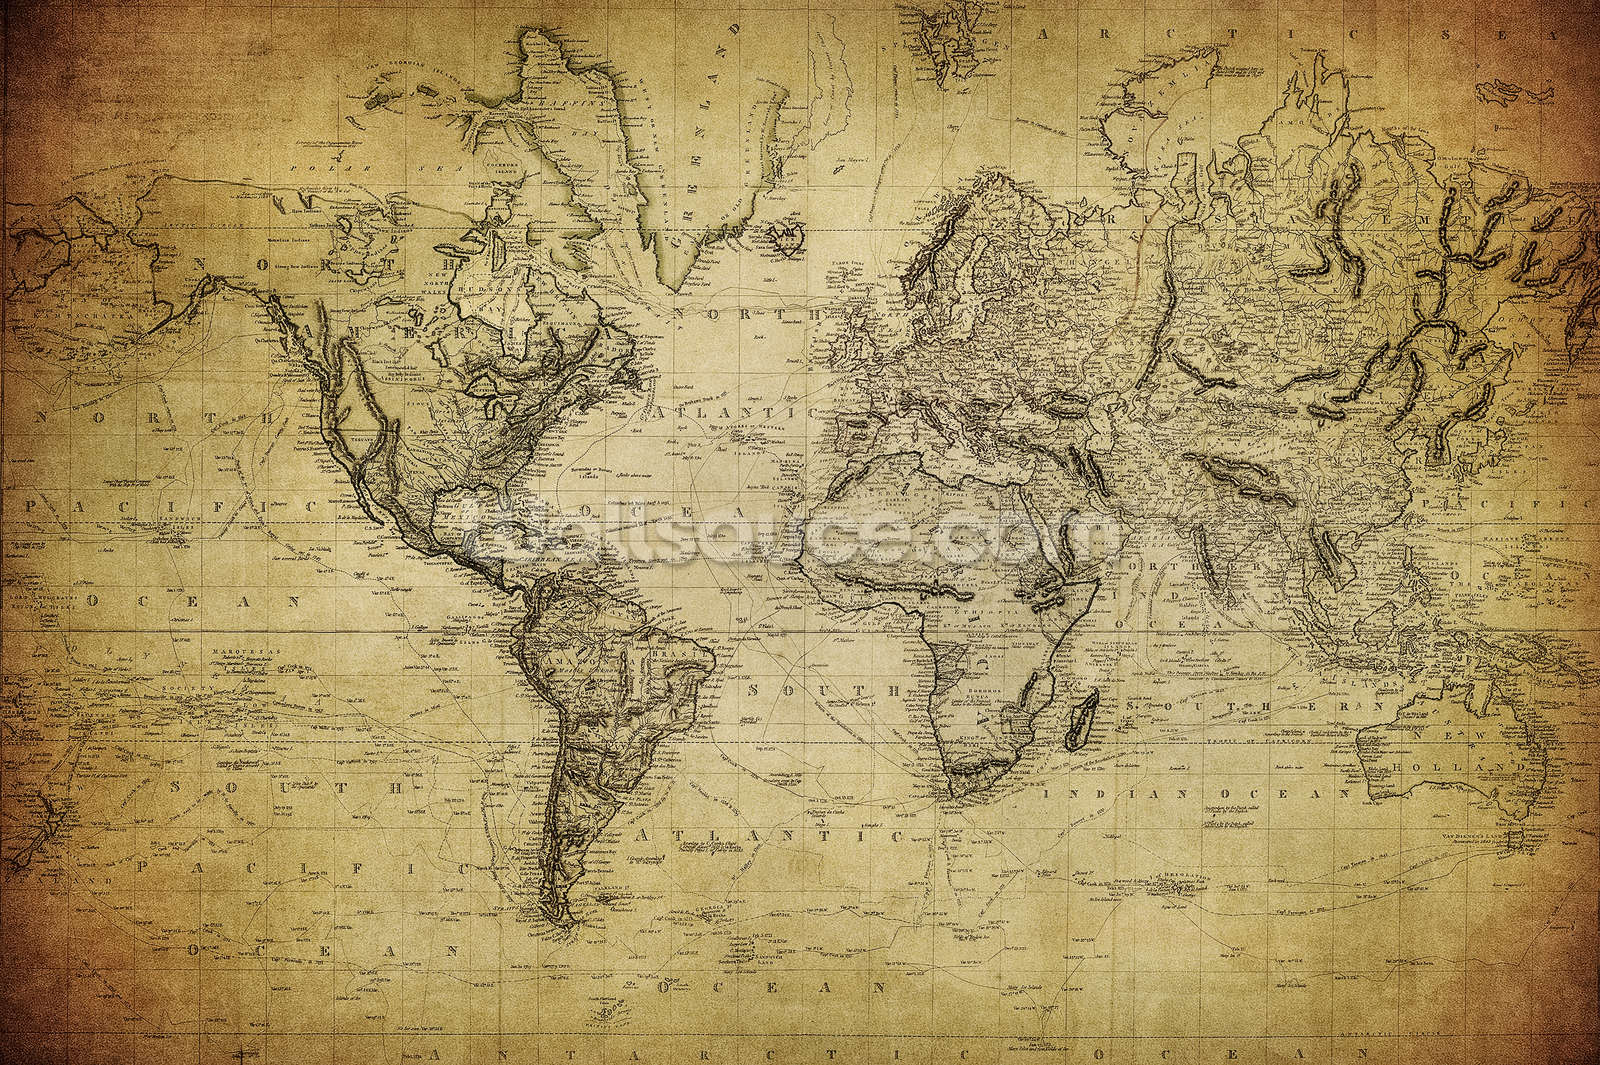 19th Century Vintage Map Wallpaper Mural | Wallsauce UK